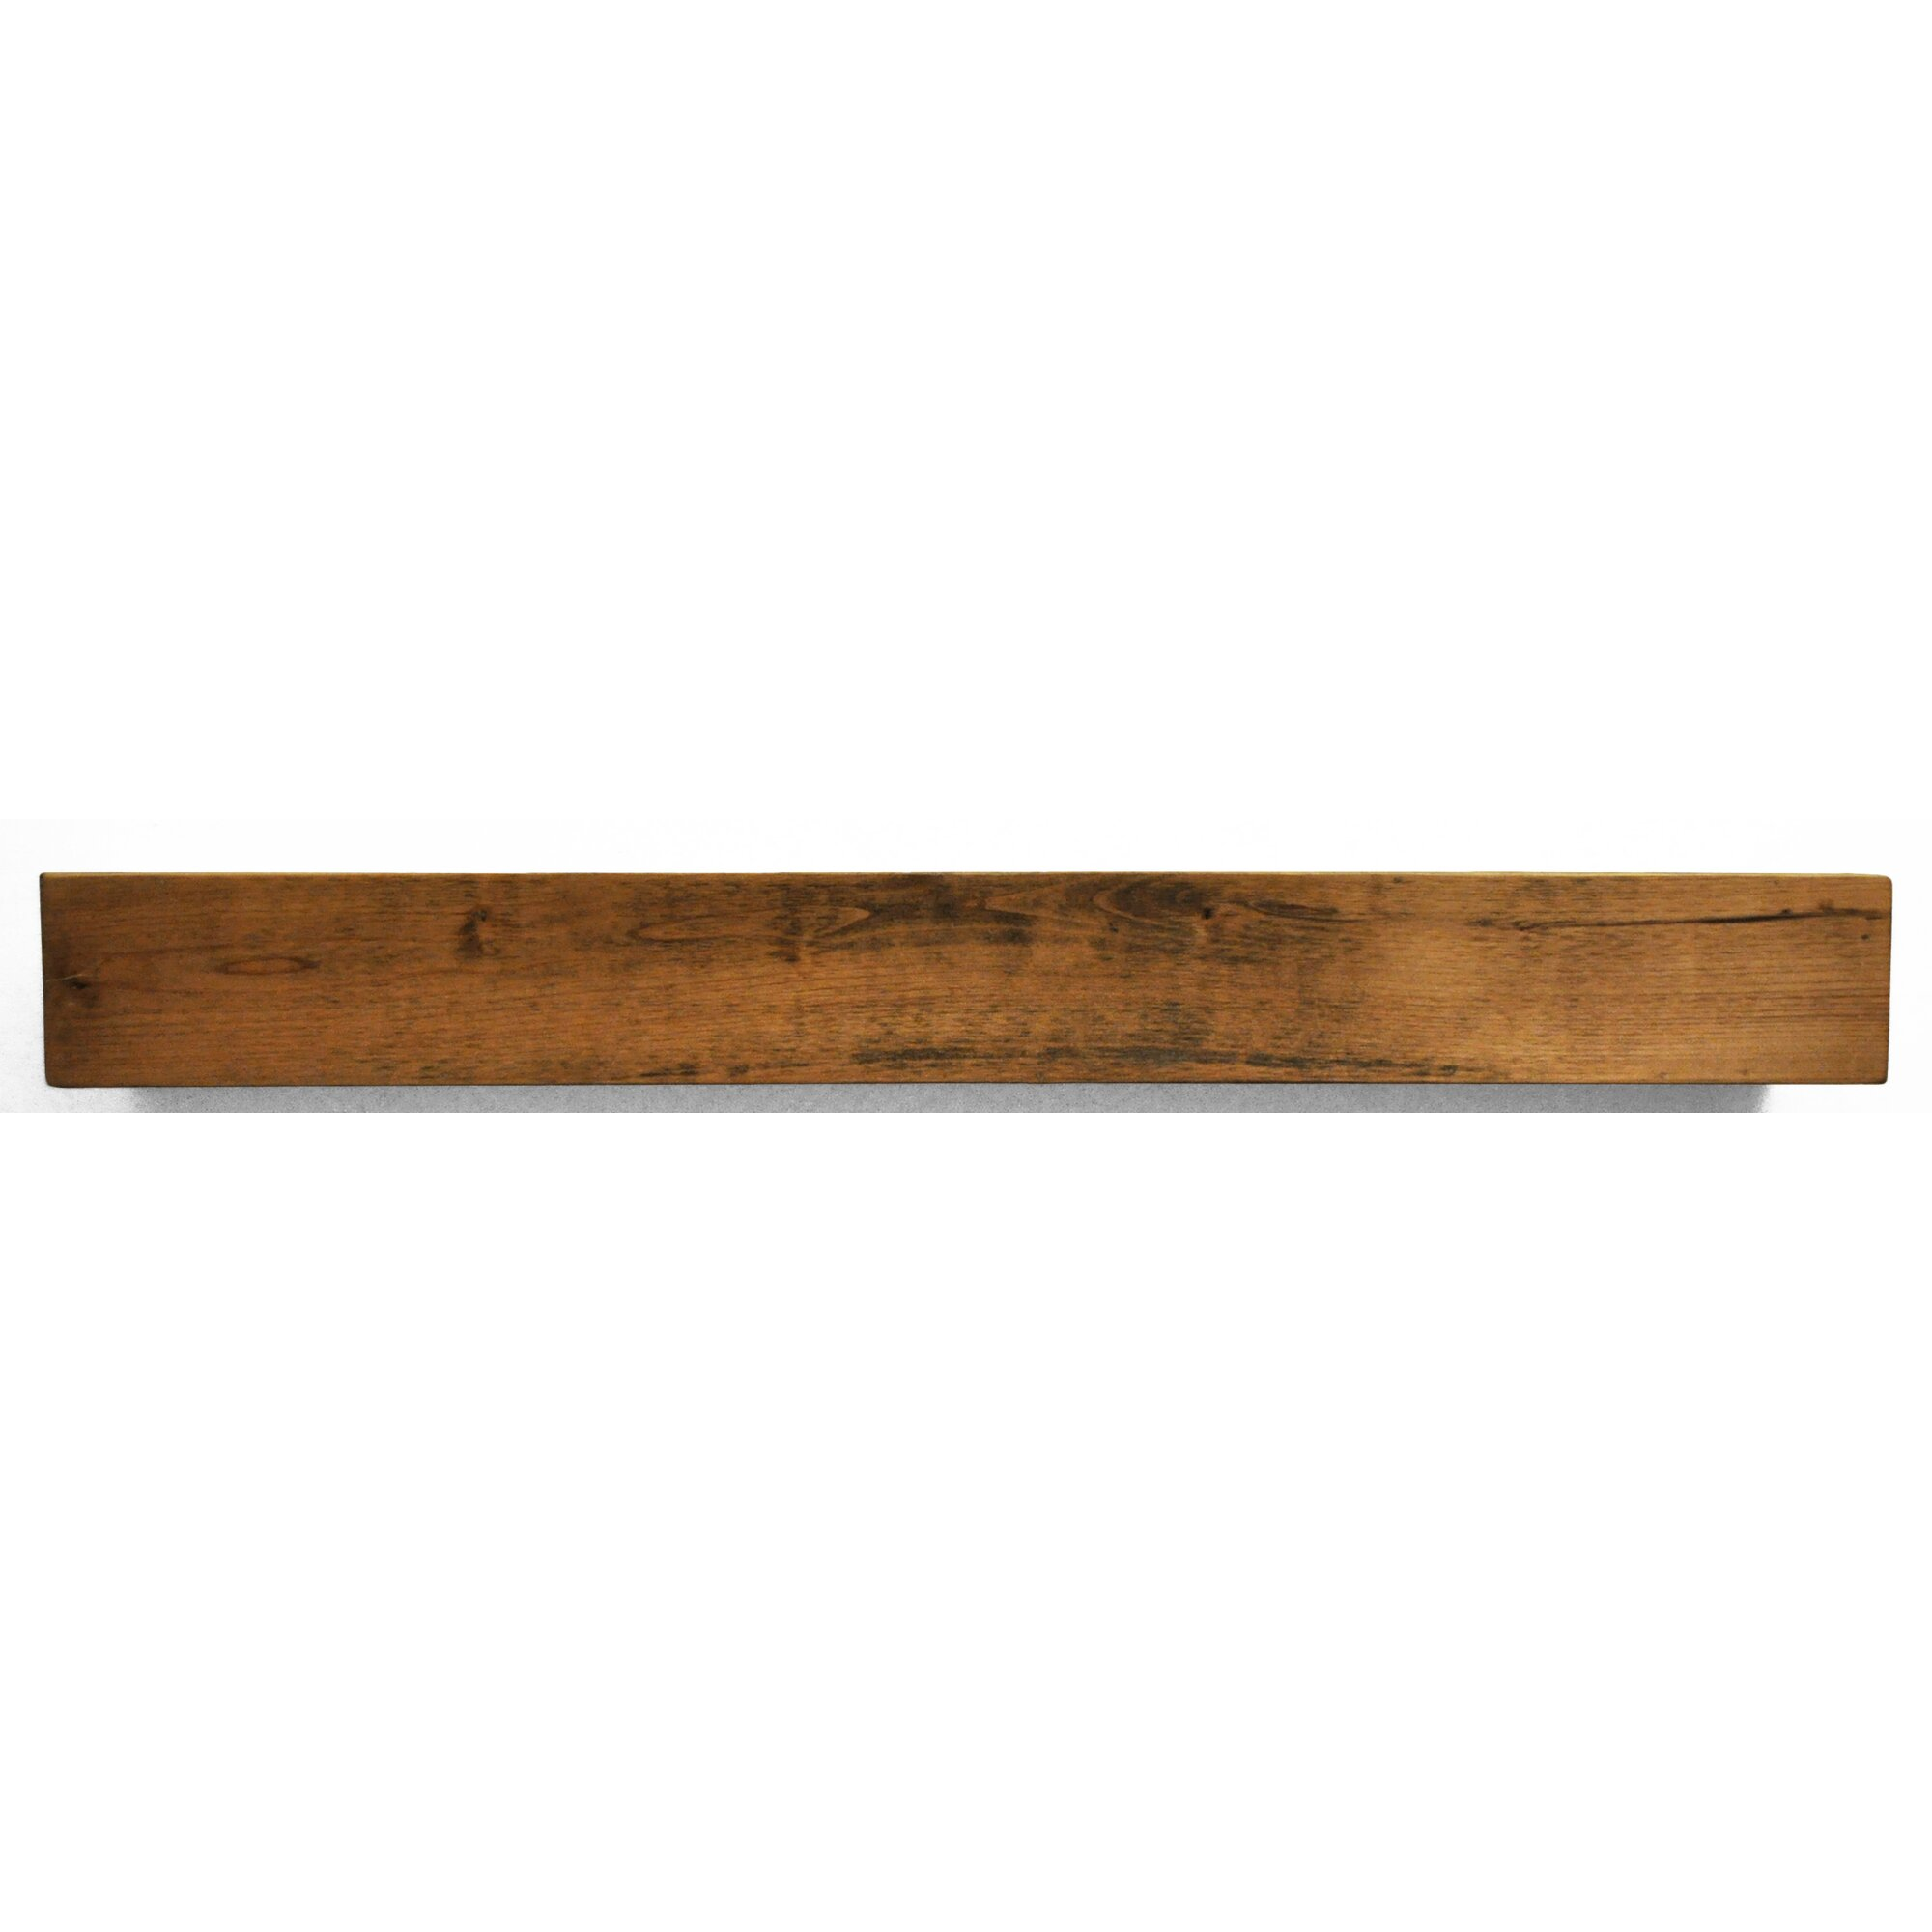 Dogberry collections modern farmhouse fireplace mantel shelf amp reviews wayfair ca